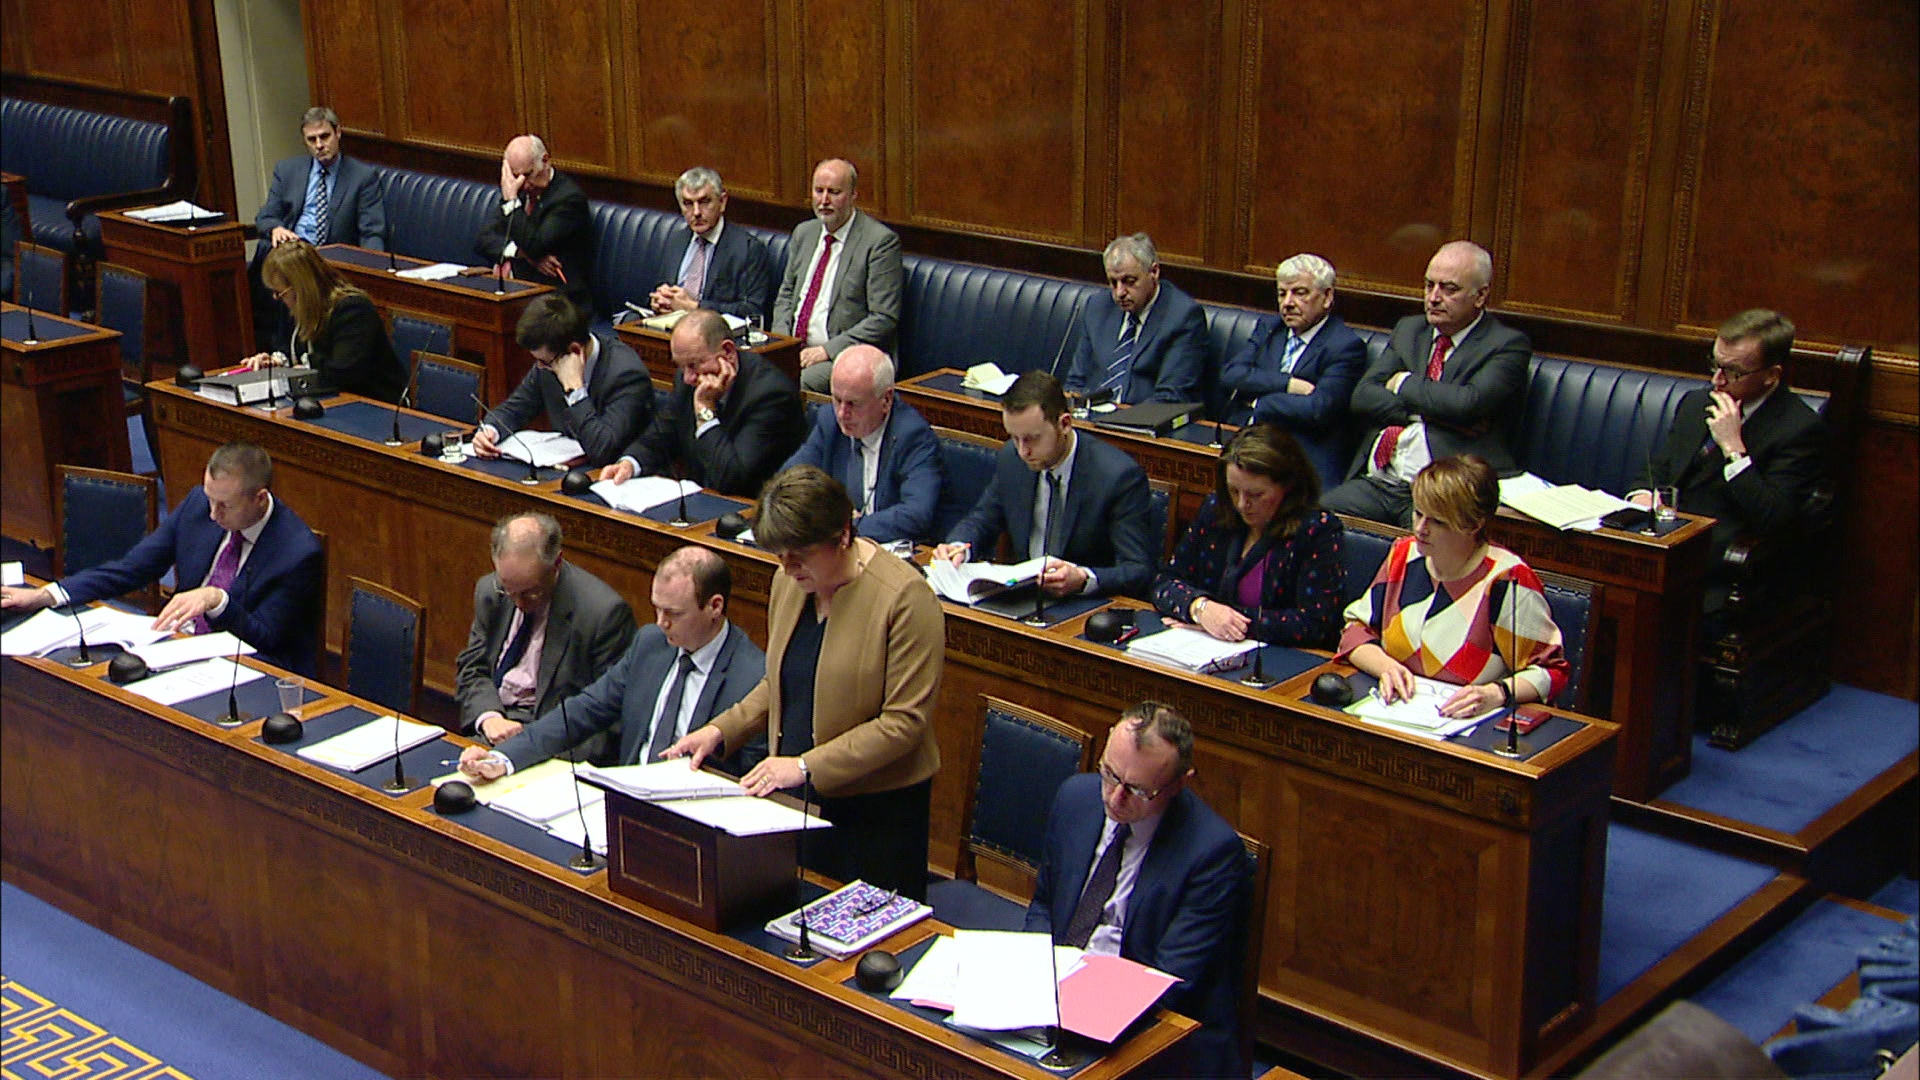 'We should not give consent to Brexit bill'